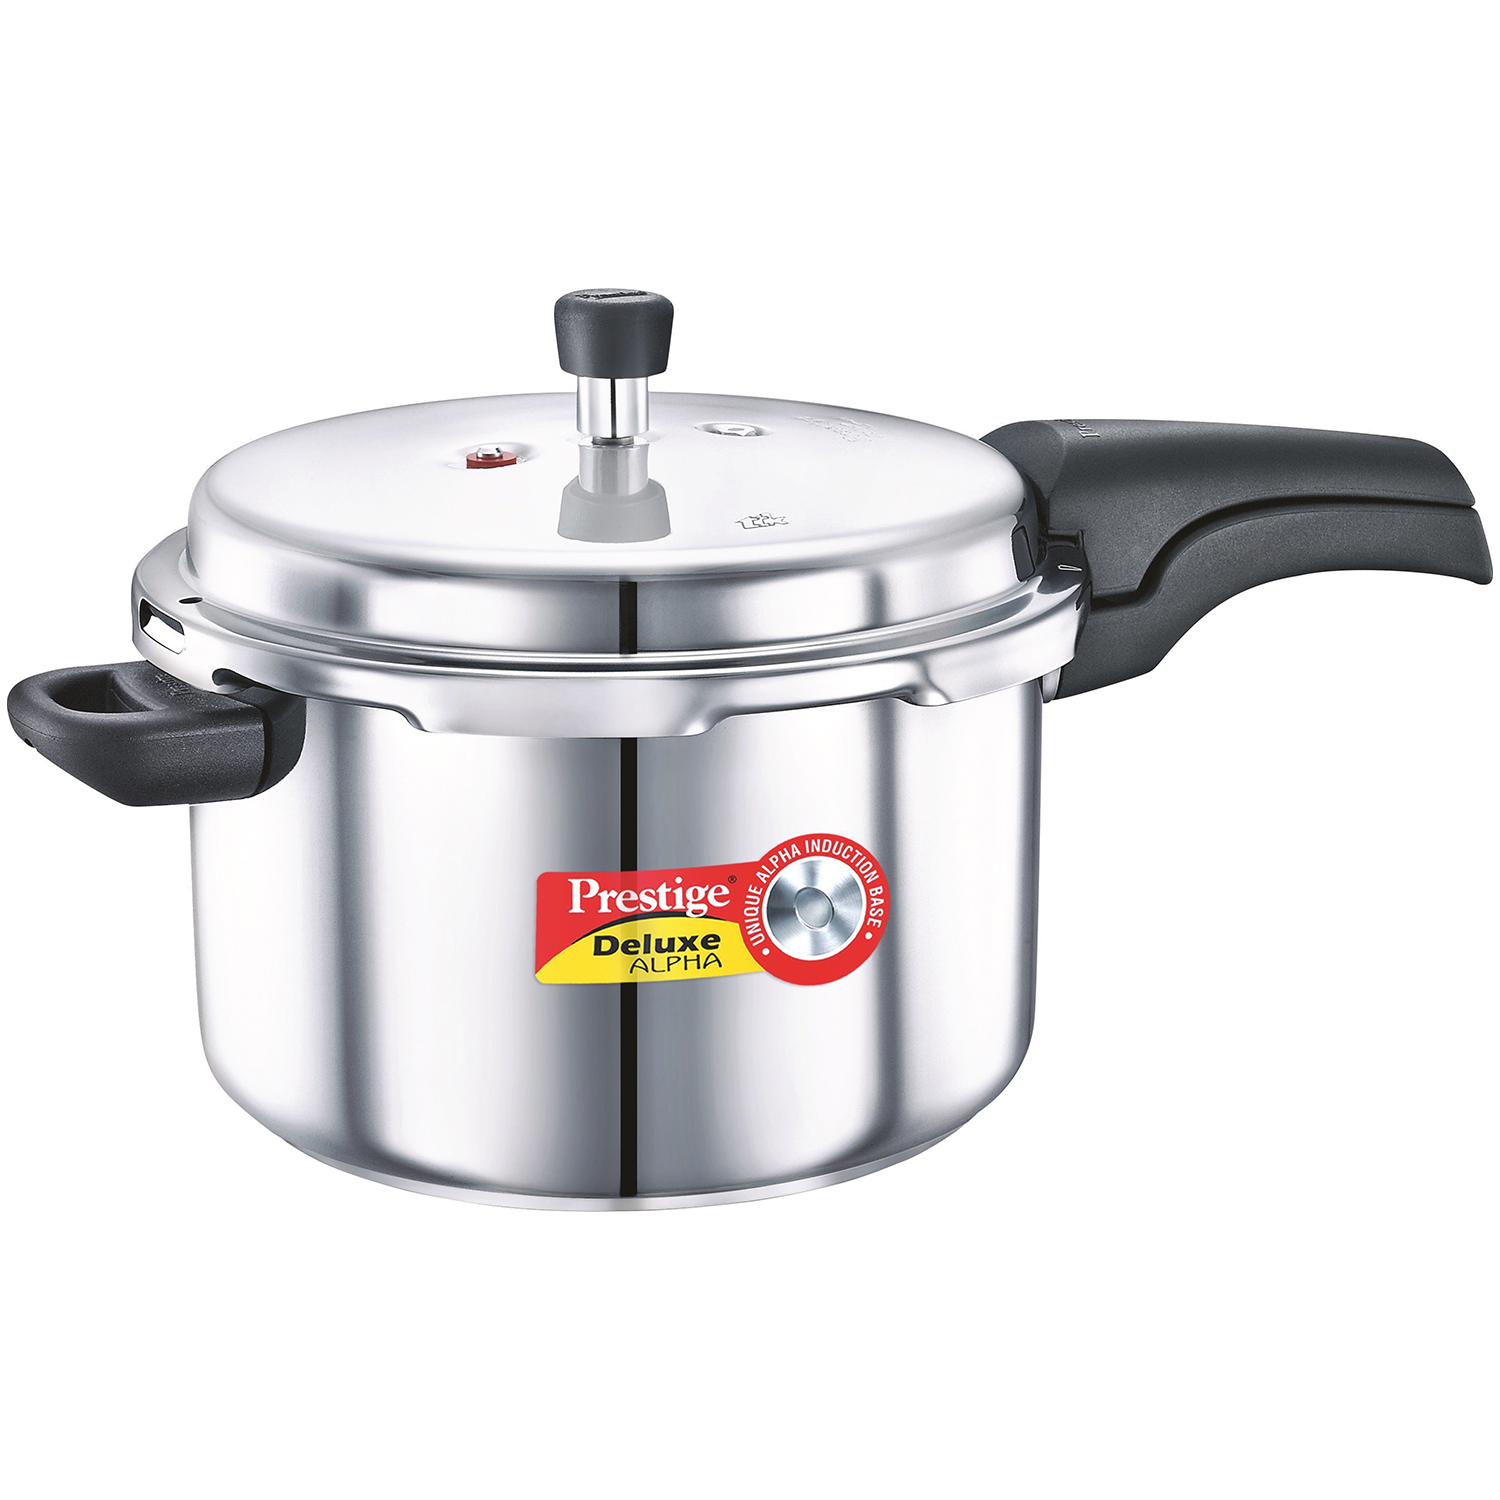 d93e10dbe Prestige Deluxe Alpha 5.5 L Pressure Cooker with Induction Bottom Stainless  Steel